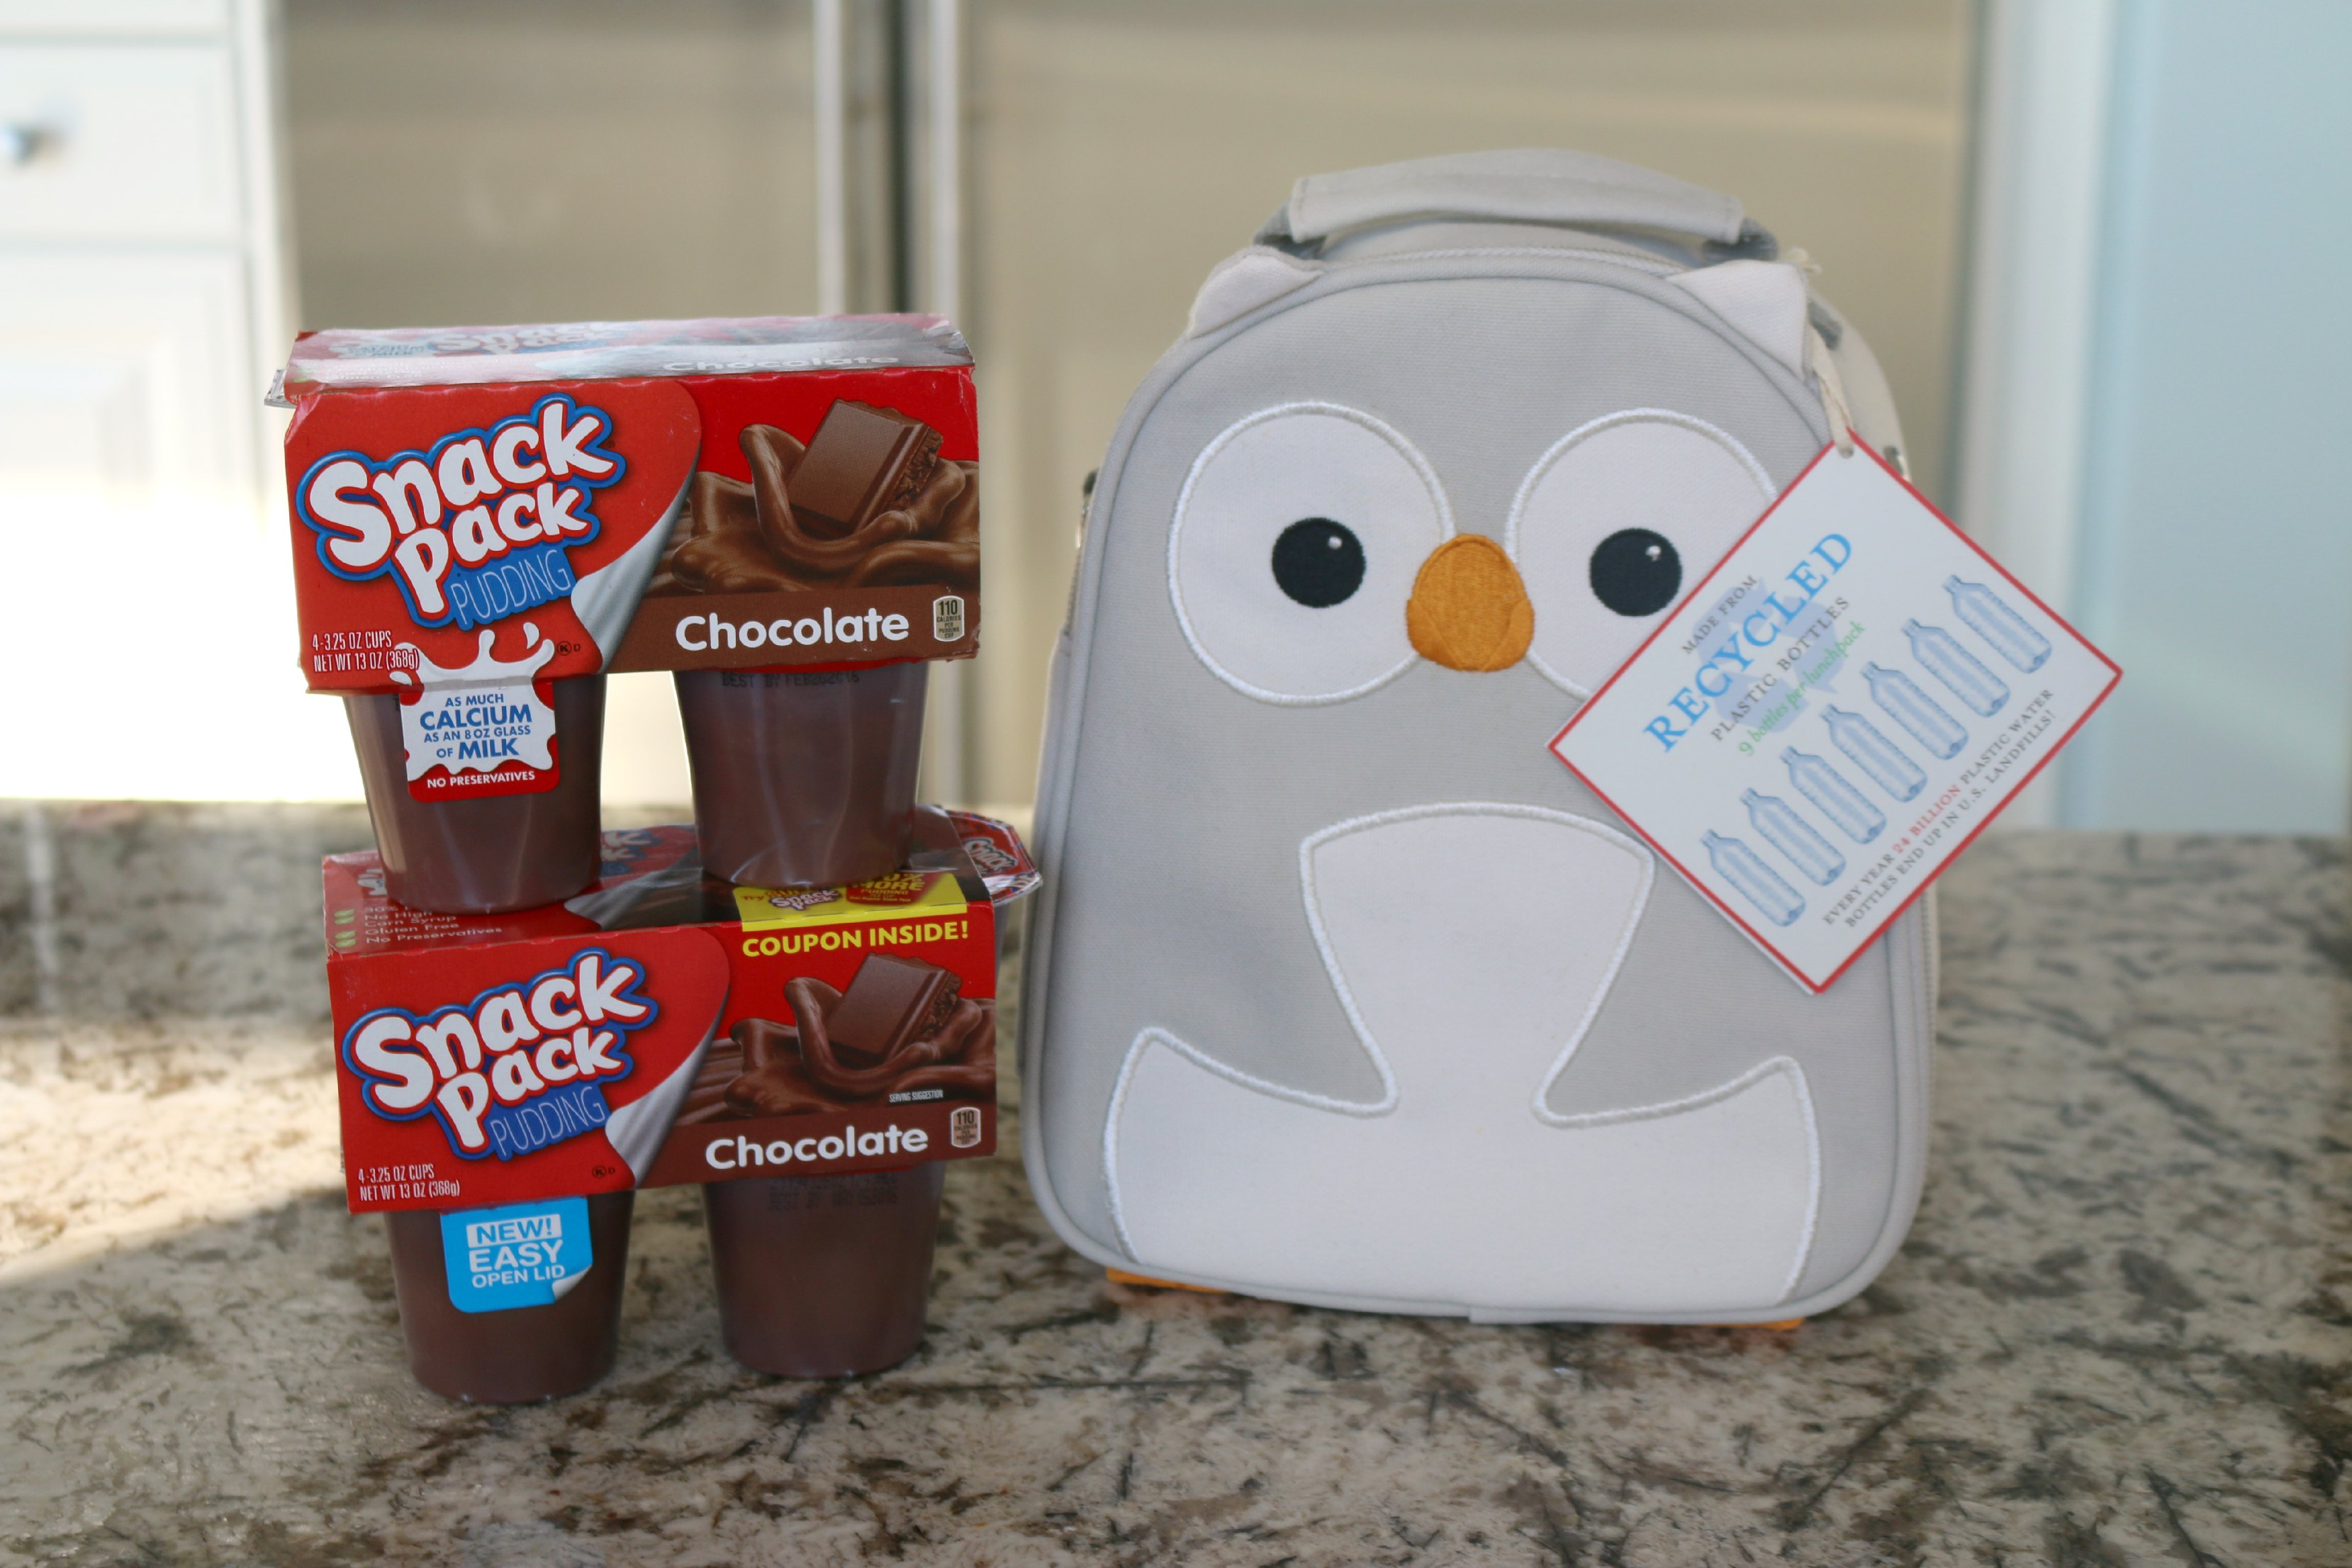 snack pack pudding